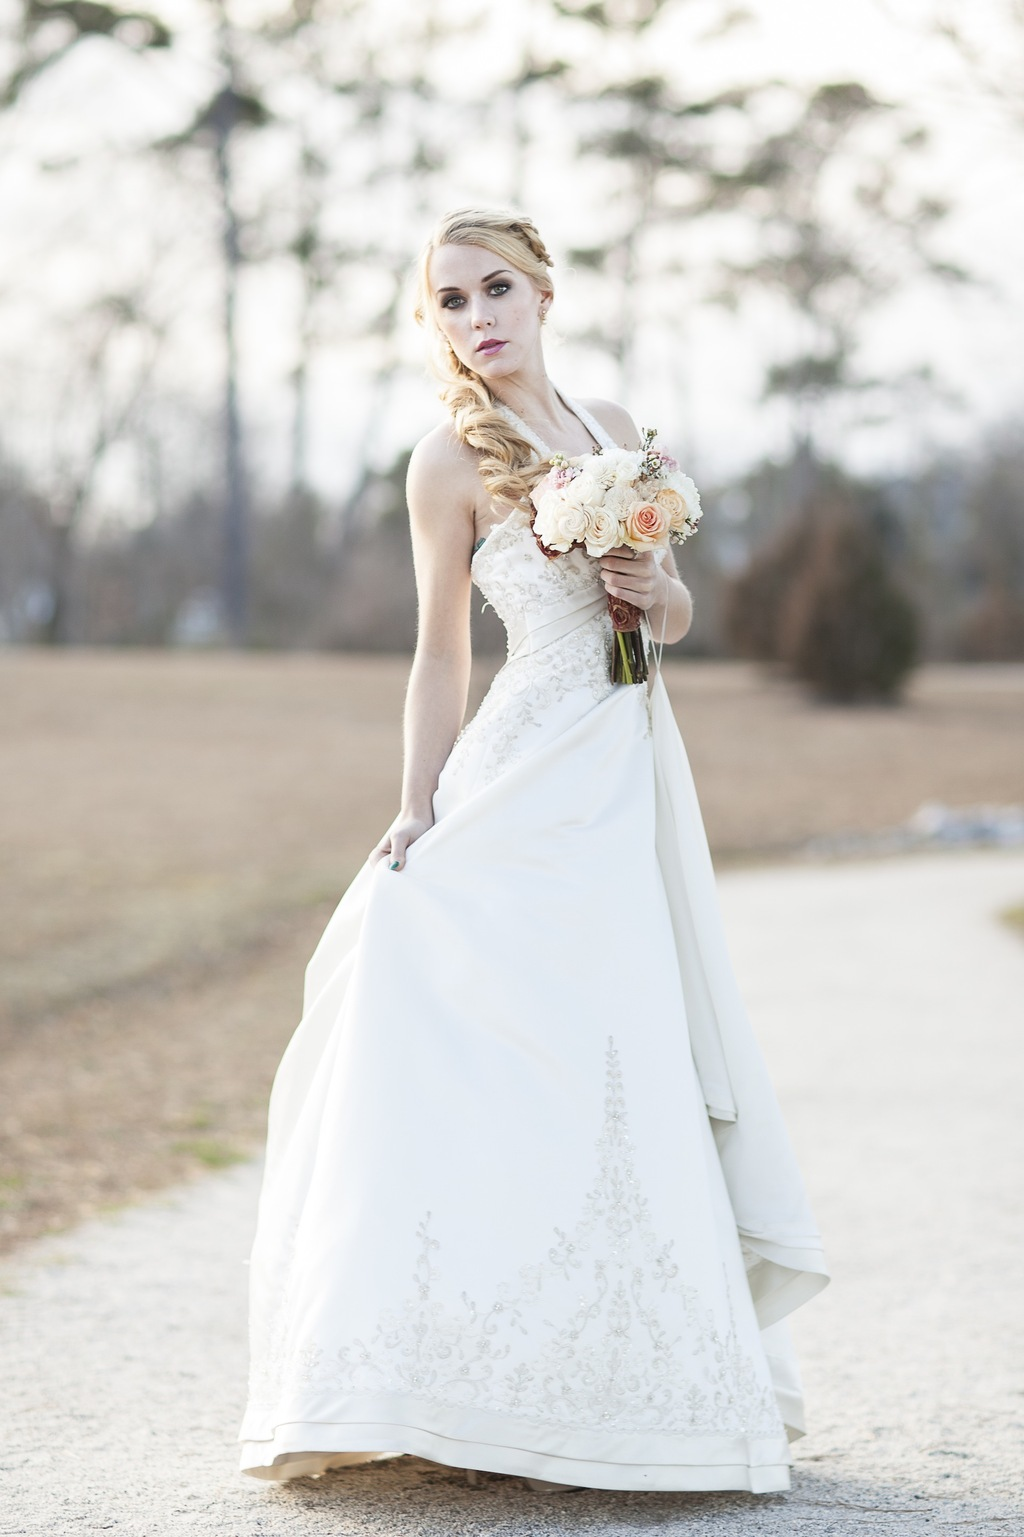 Hundley_notapplicable_michael_and_carina_photography_virginiaweddingphotographersmichaelcarinastyled16of23.full